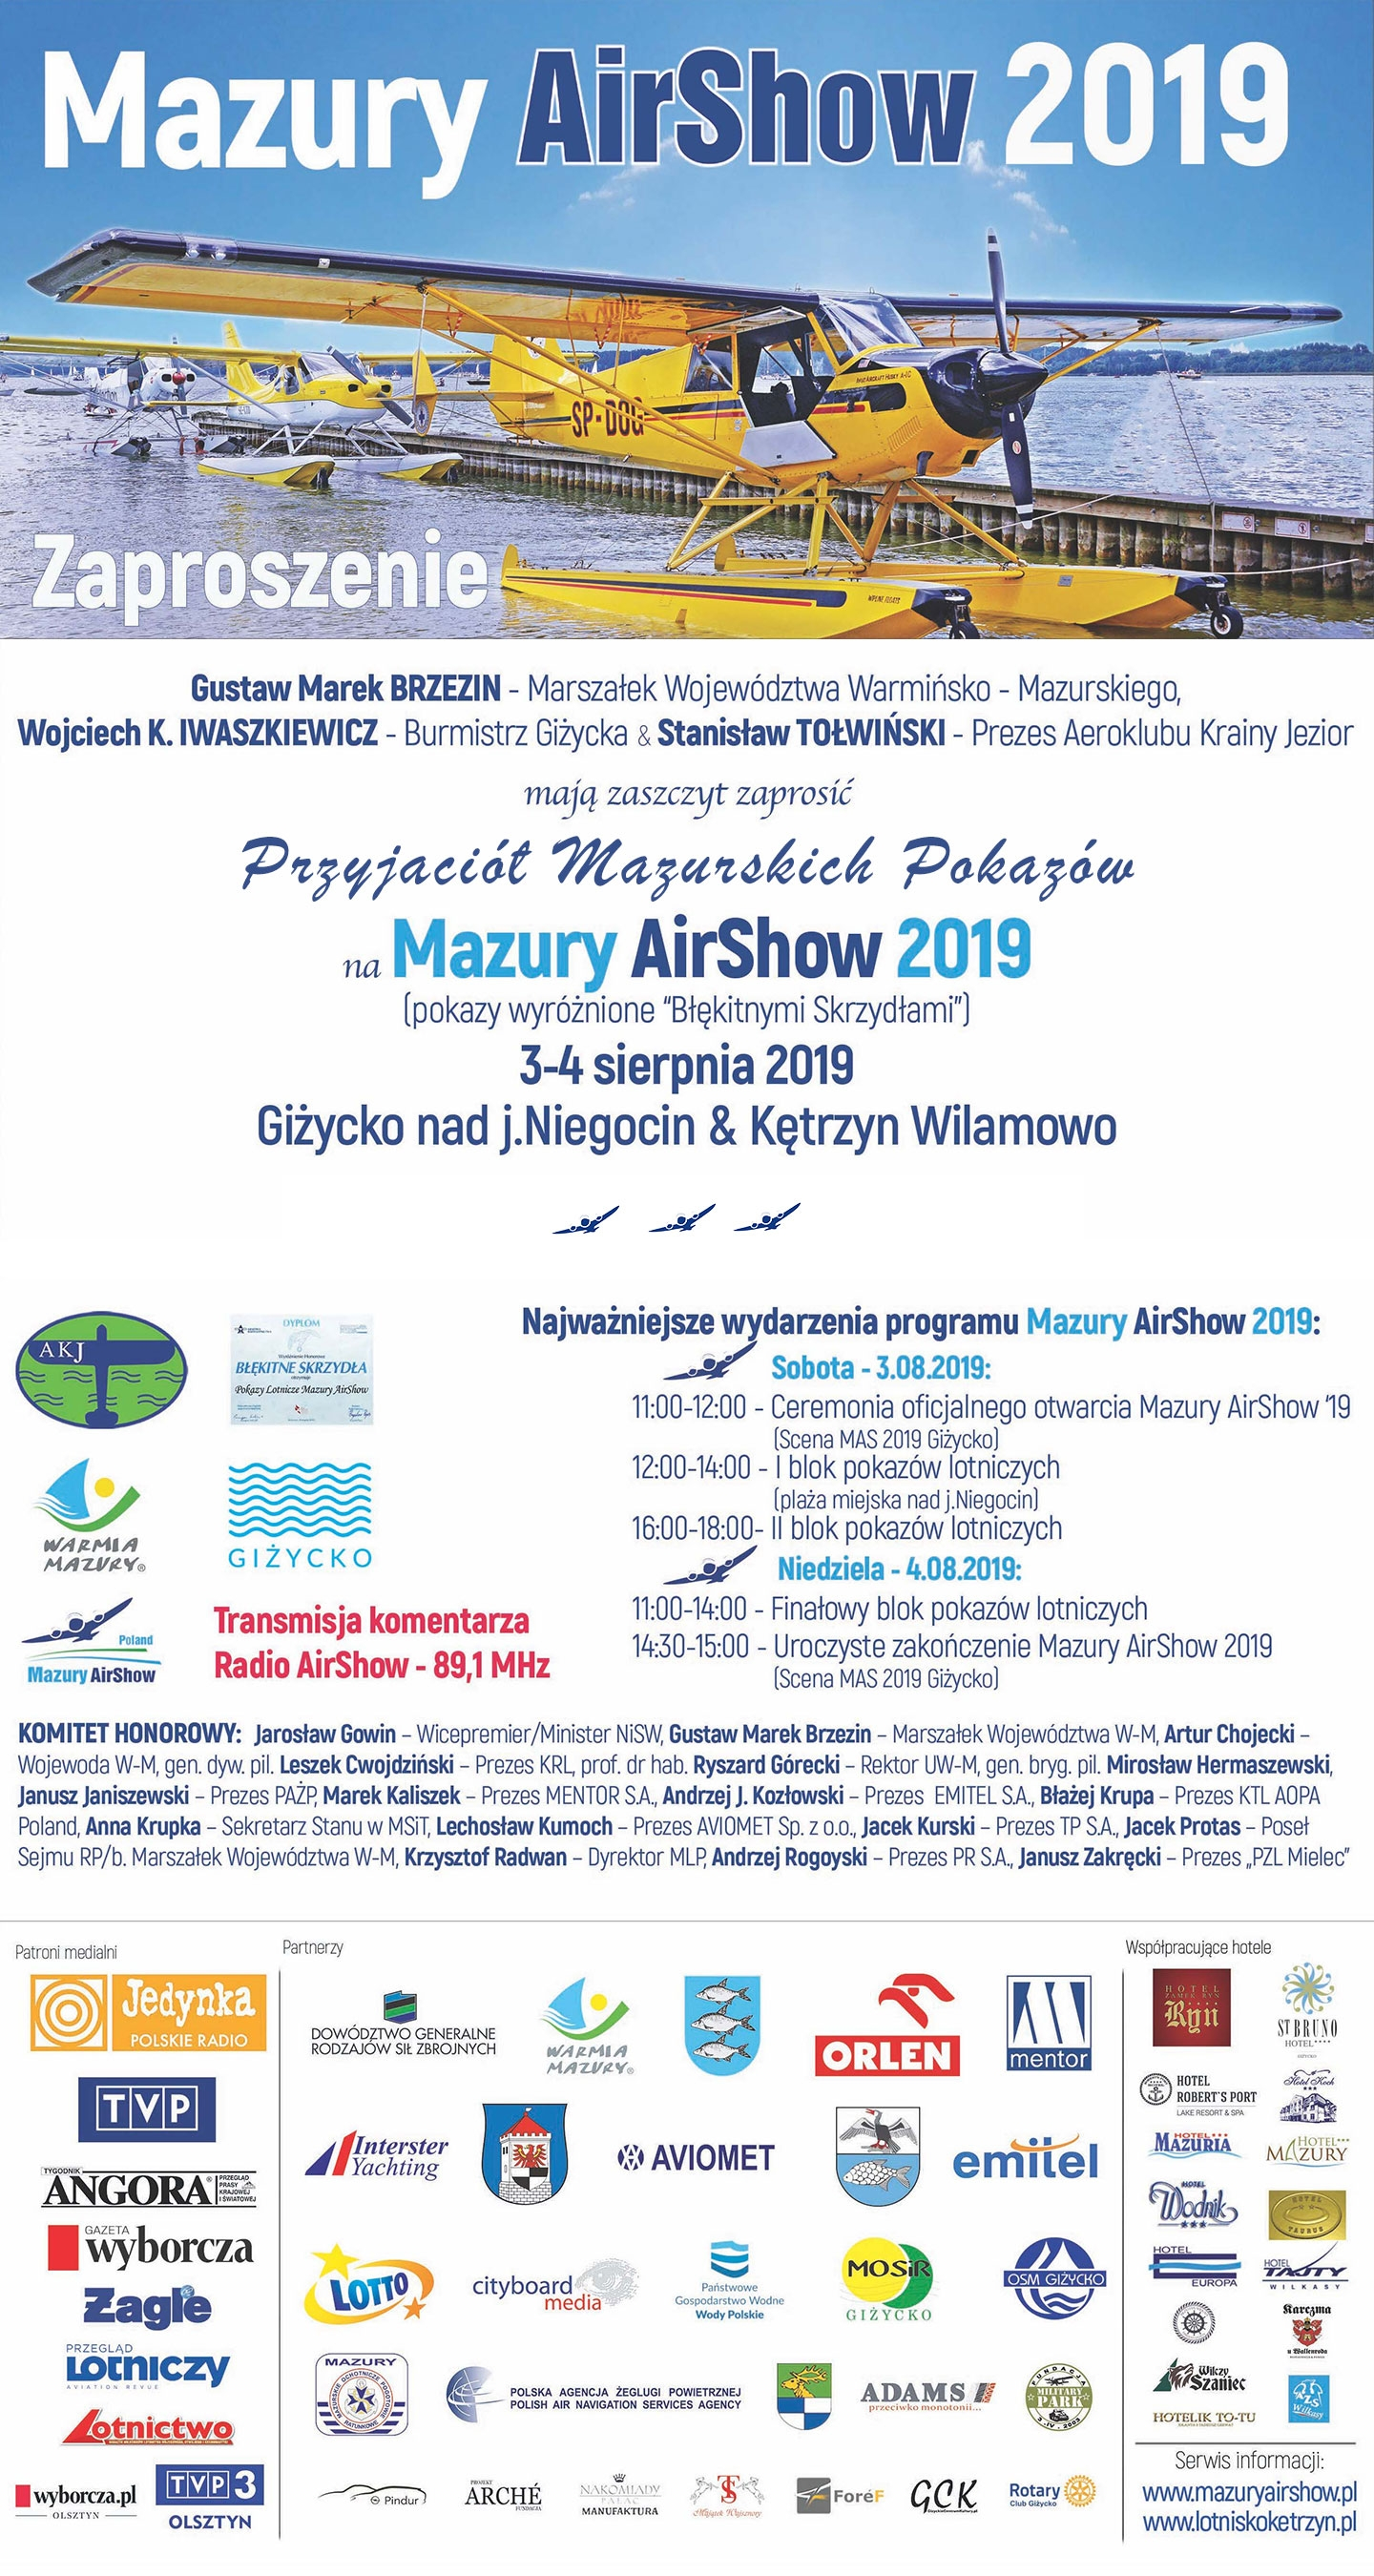 03.-04.08.19 r XXI International ZLOT of Friends of Aviation.